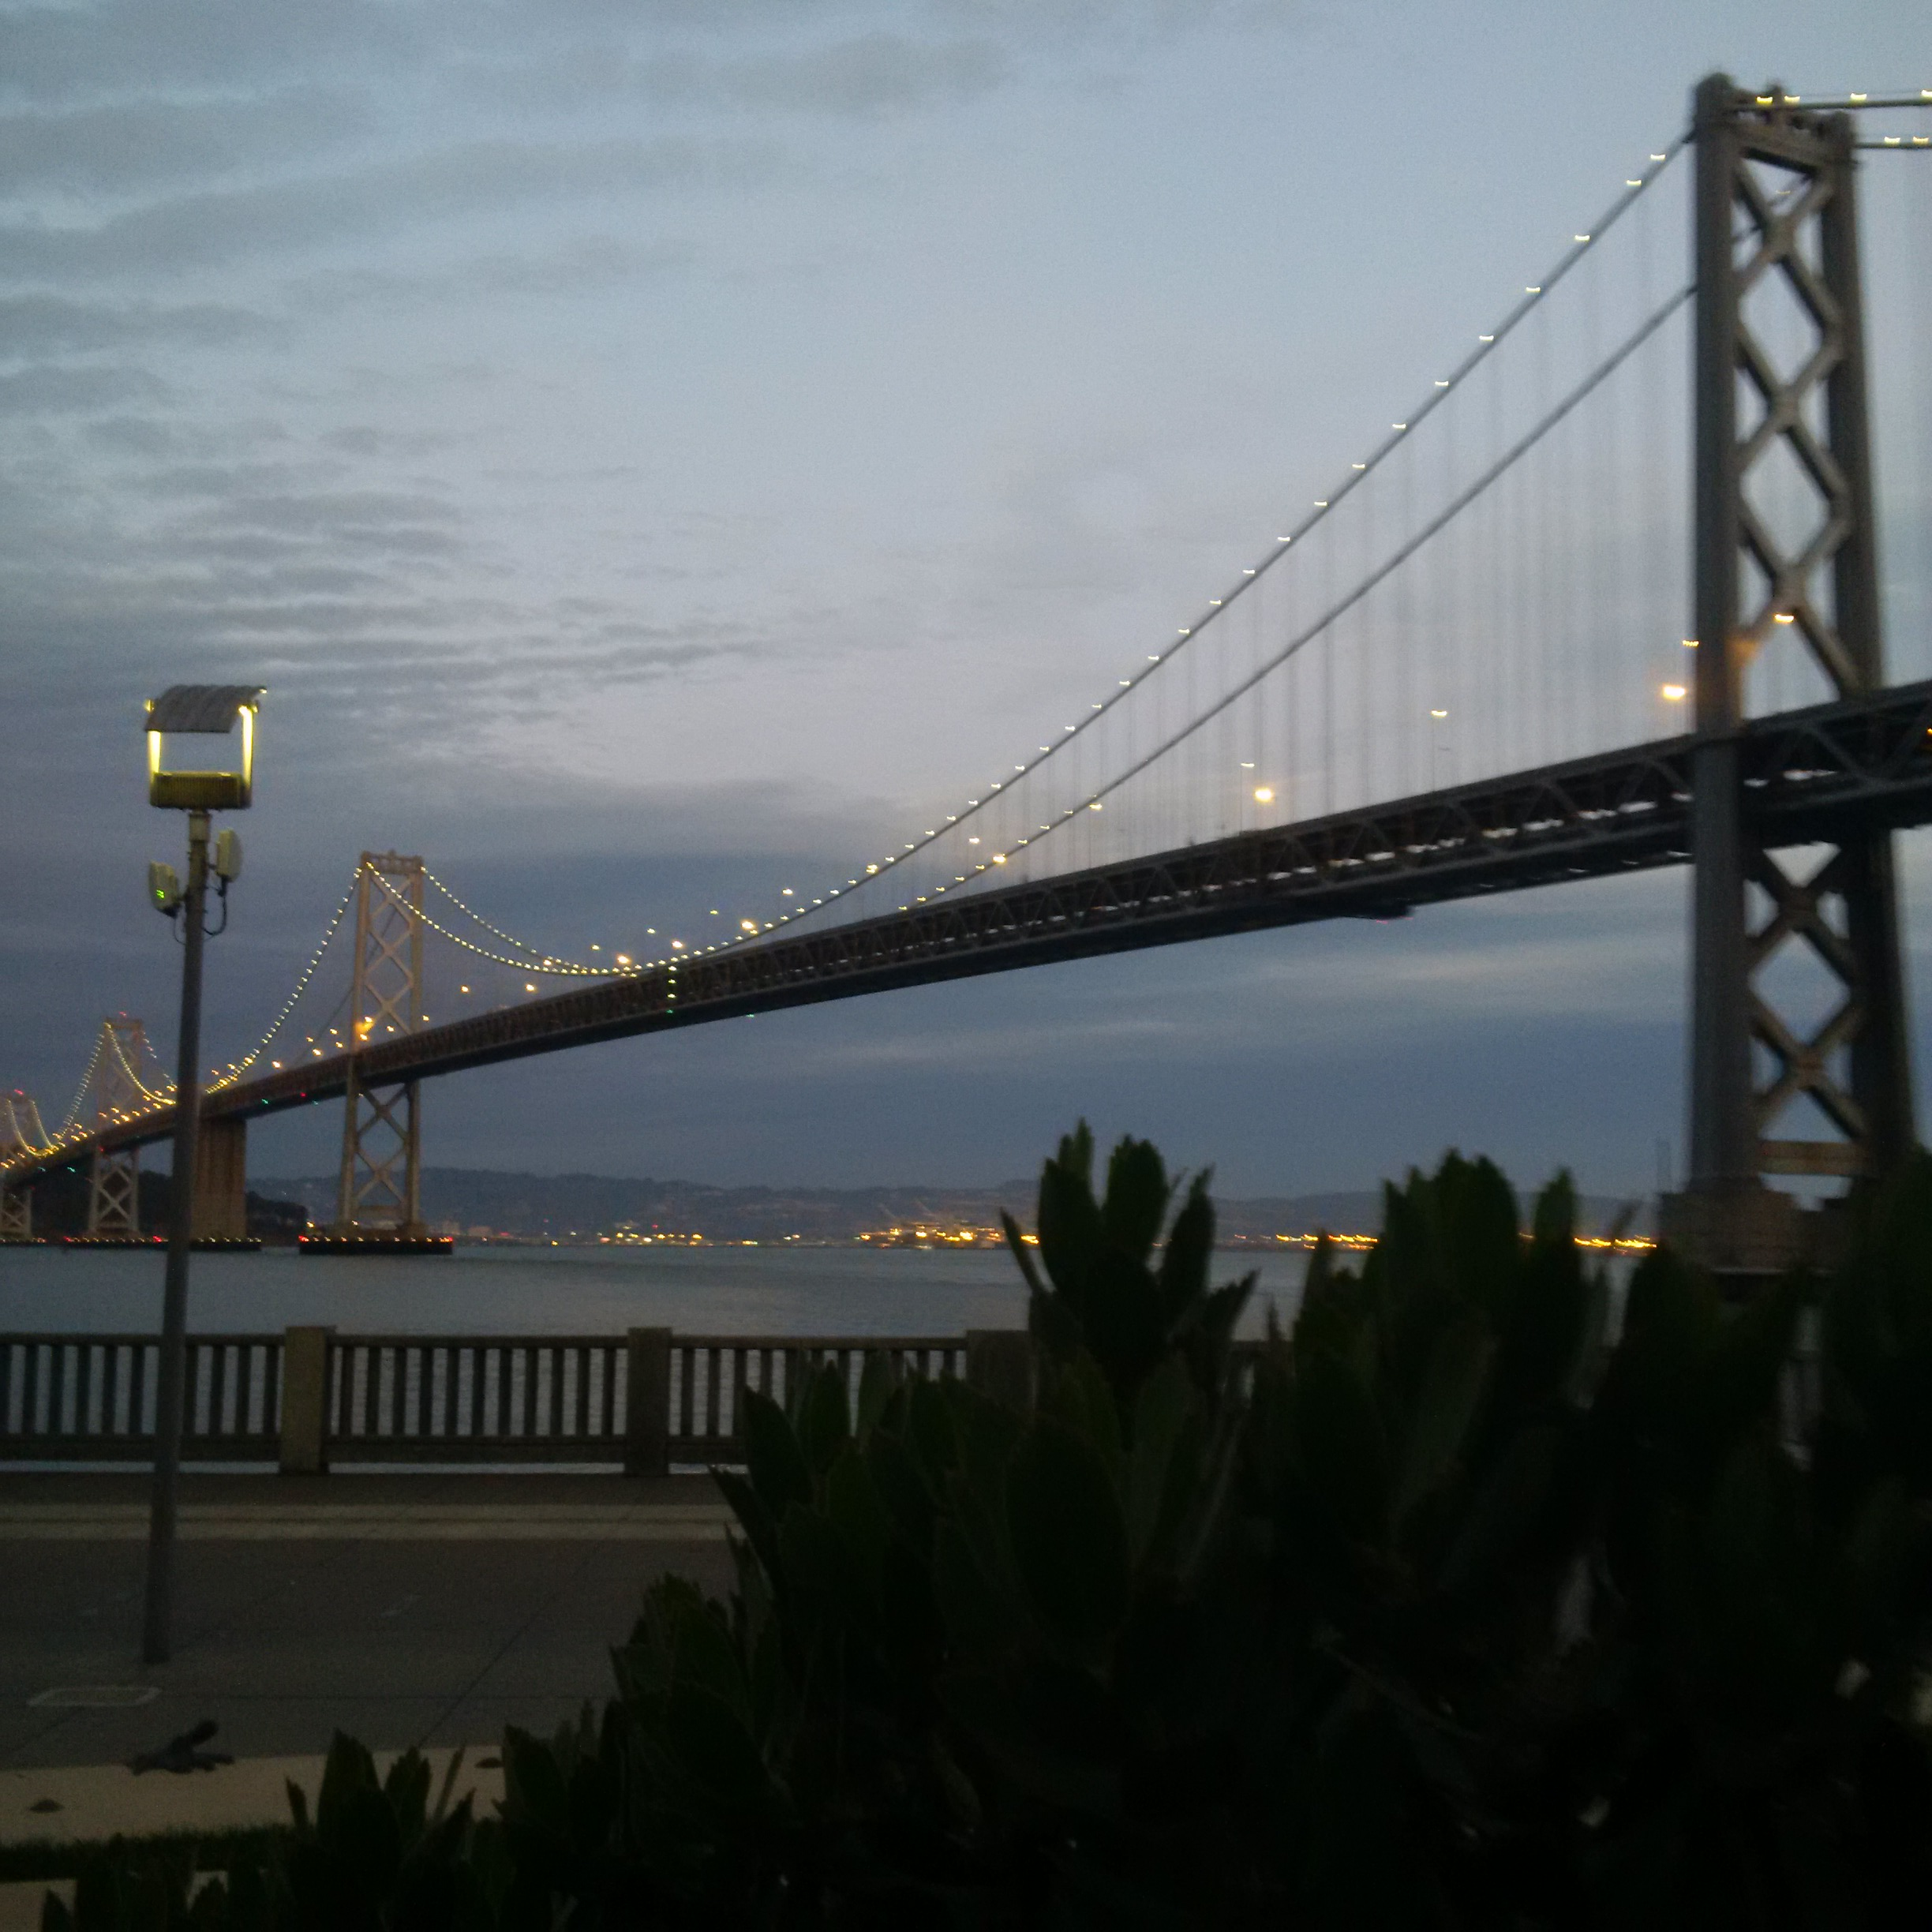 And one of the Bay Bridge at night